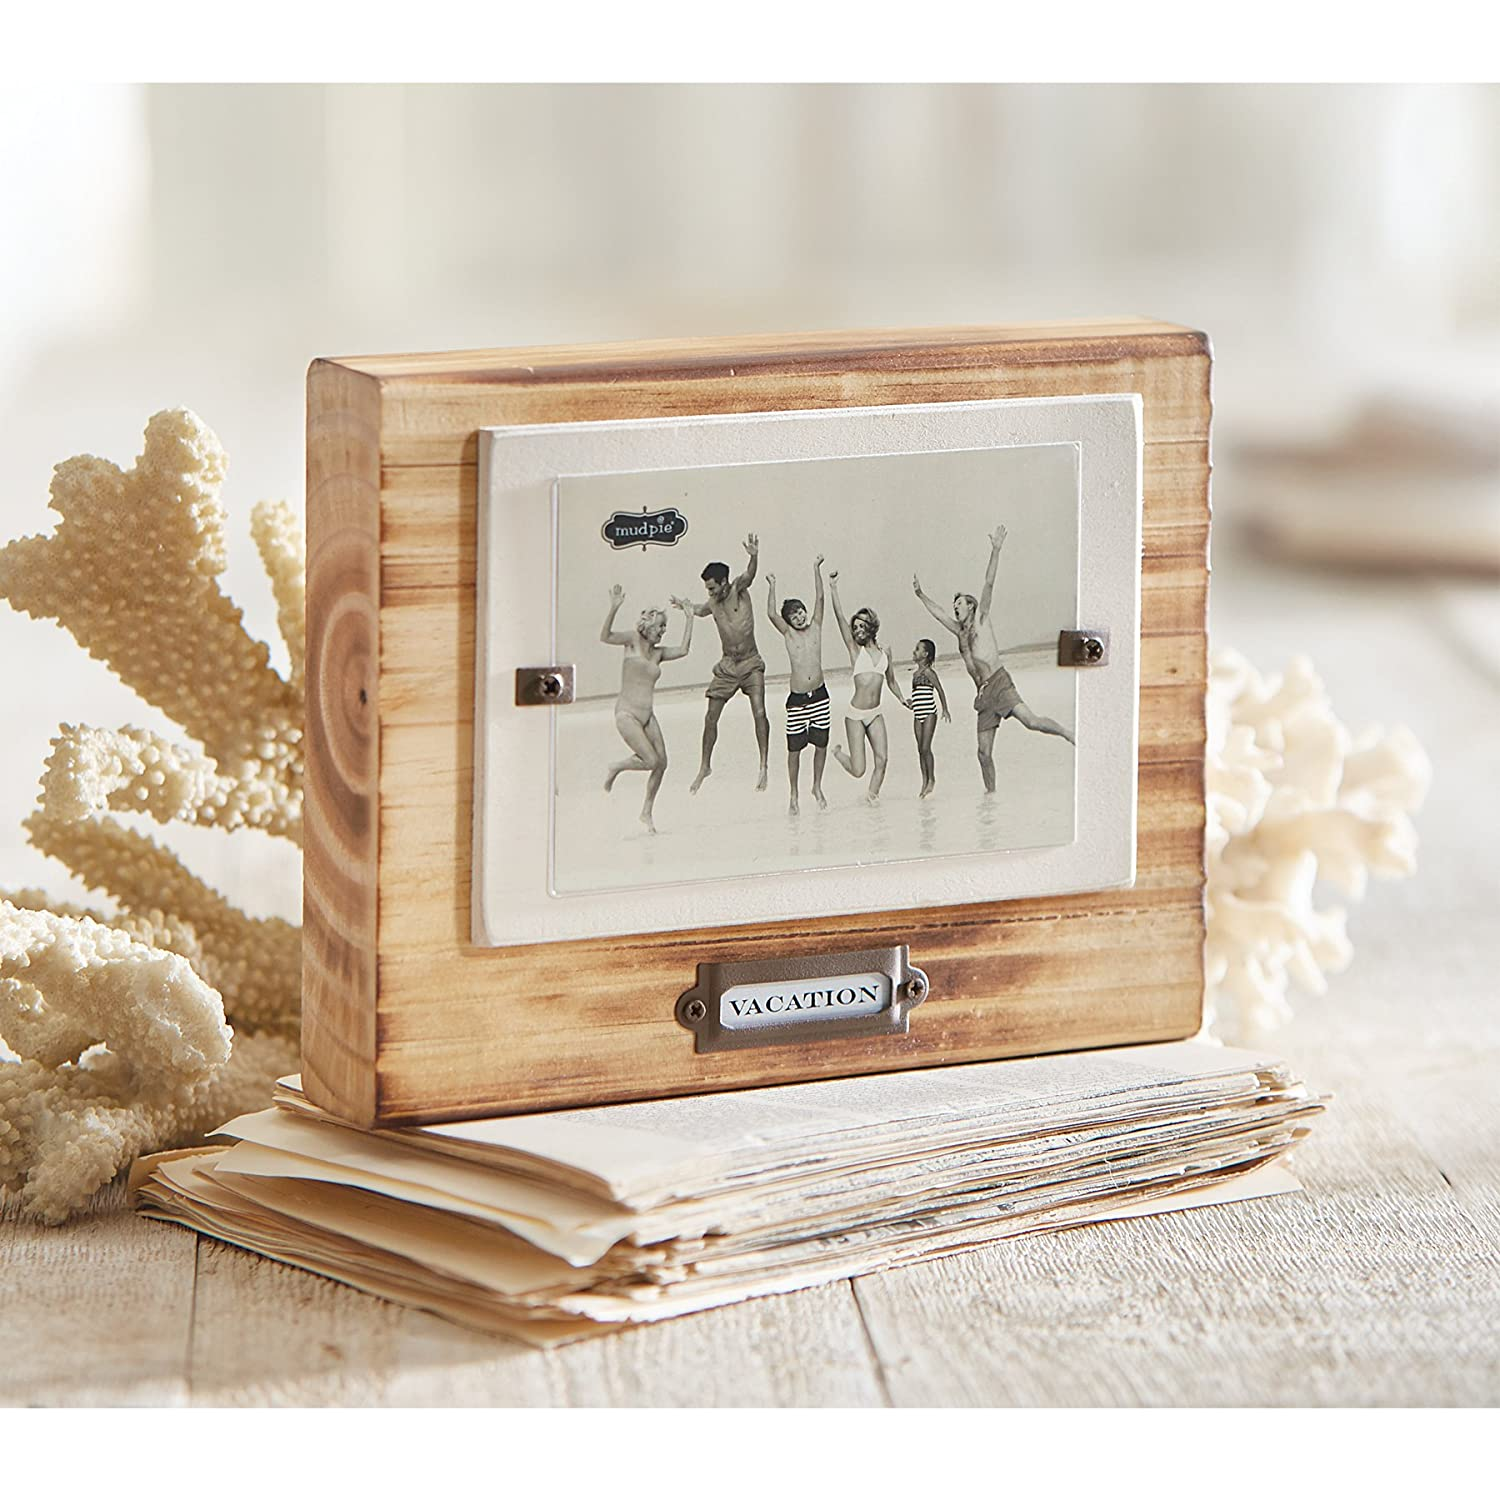 Outstanding Vacation Picture Frame Illustration - Picture Frame ...